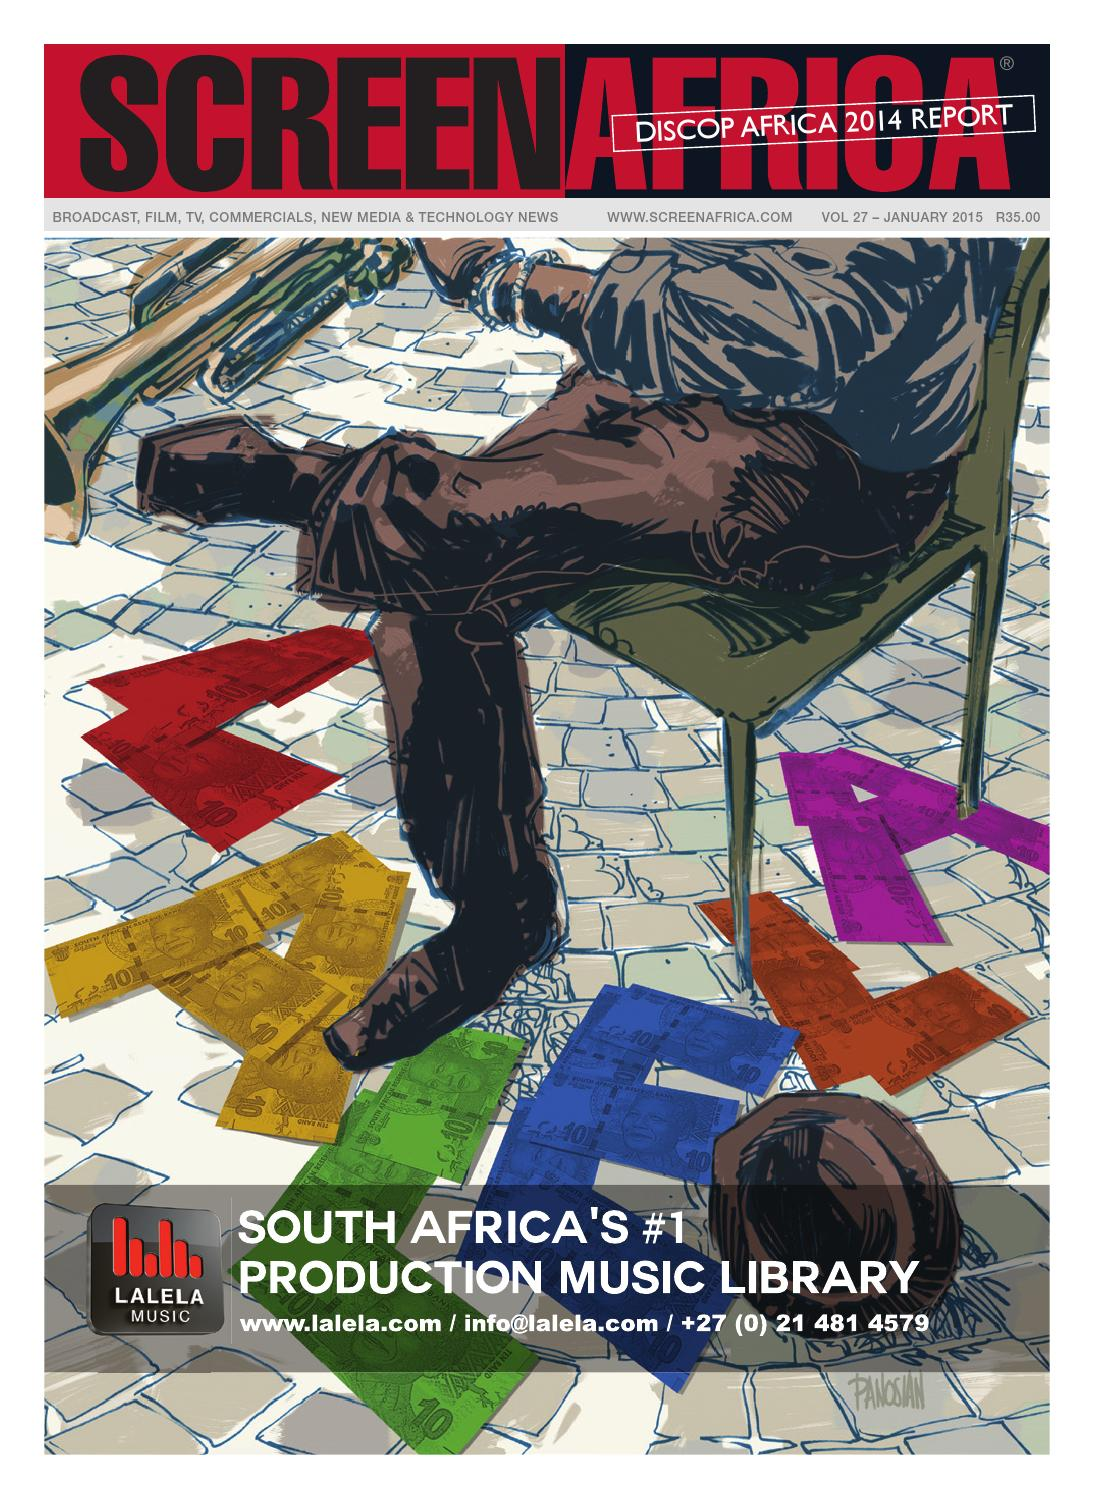 Screen Africa January 2015 By Sun Circle Publishers Issuu Kingdom Heart Hd 28 Final Chapter Prologue R3